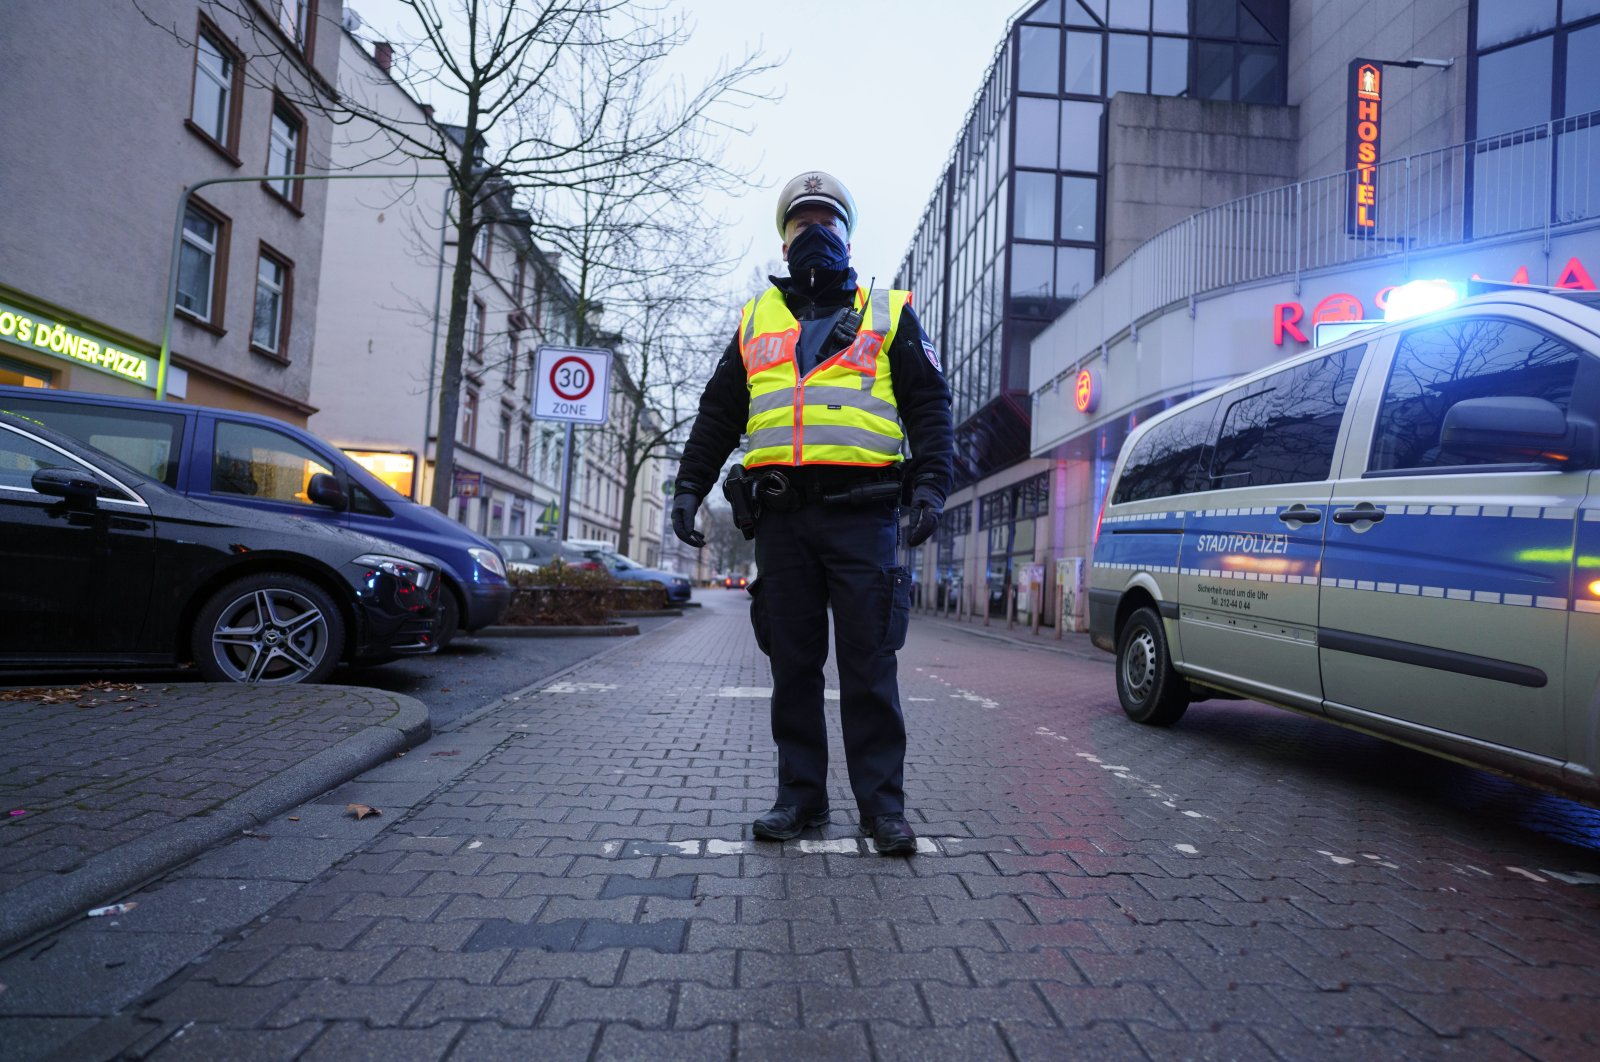 A policeman at the scene after a bomb was found in a residential area in the Gallus district of Frankfurt, Germany, Dec. 6, 2020. (AP Photo)